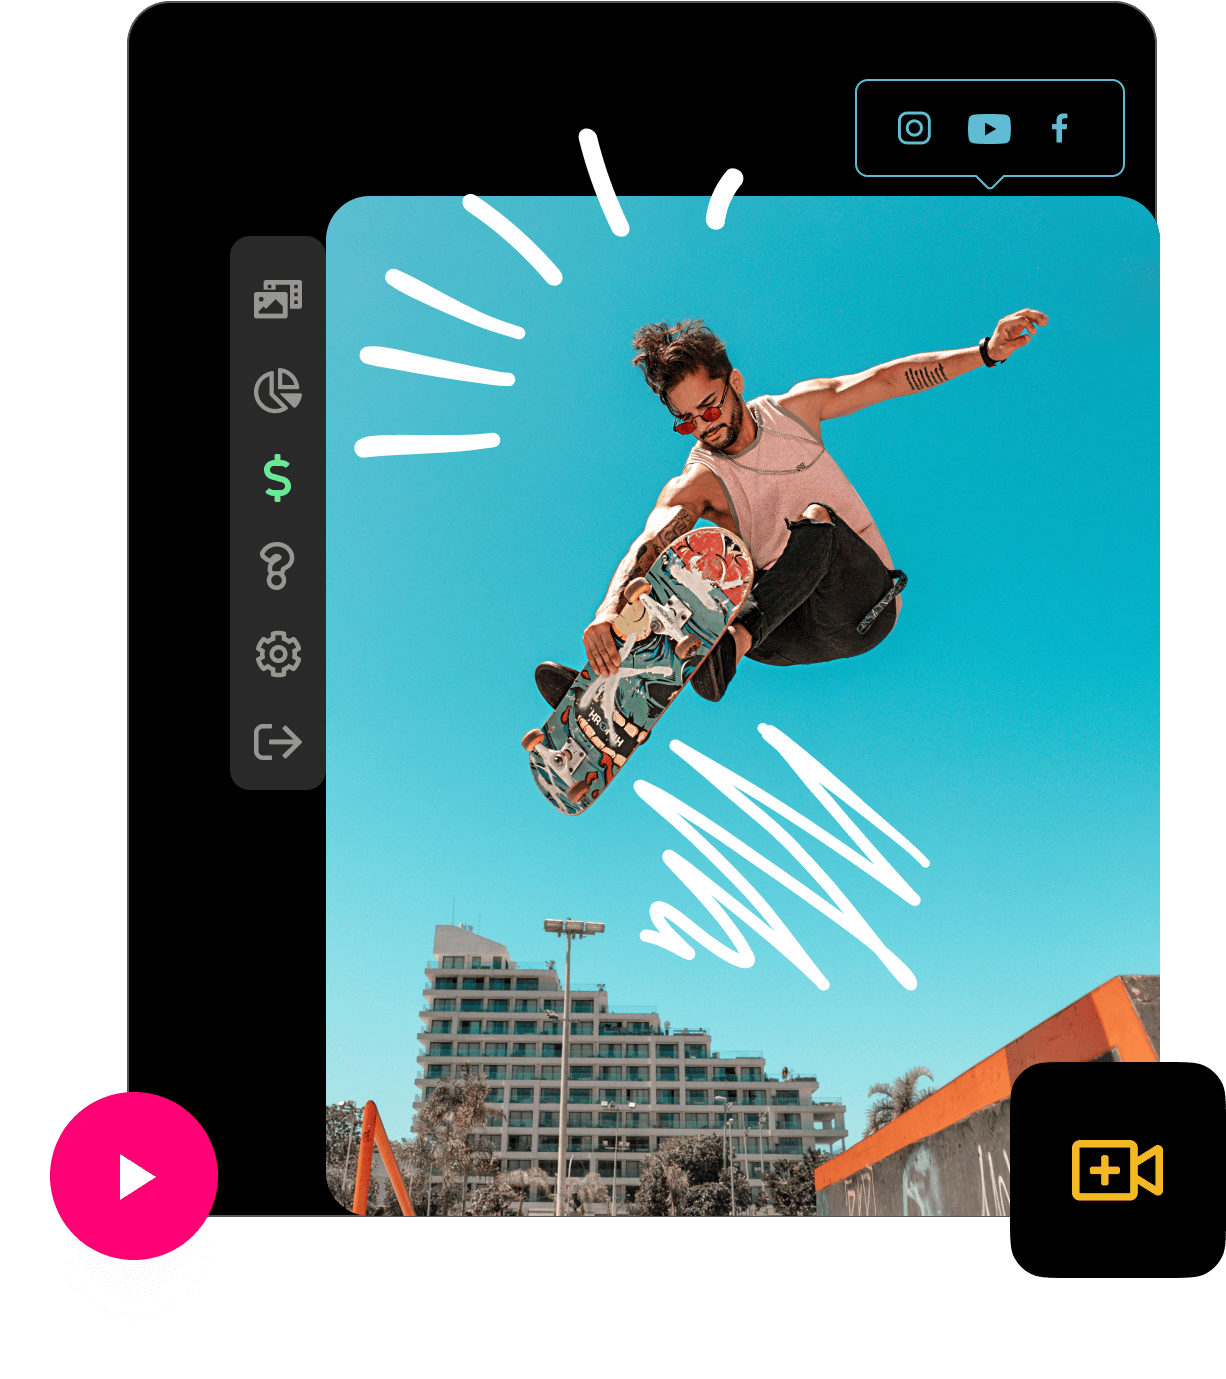 Product screen example with man jumping on skateboard